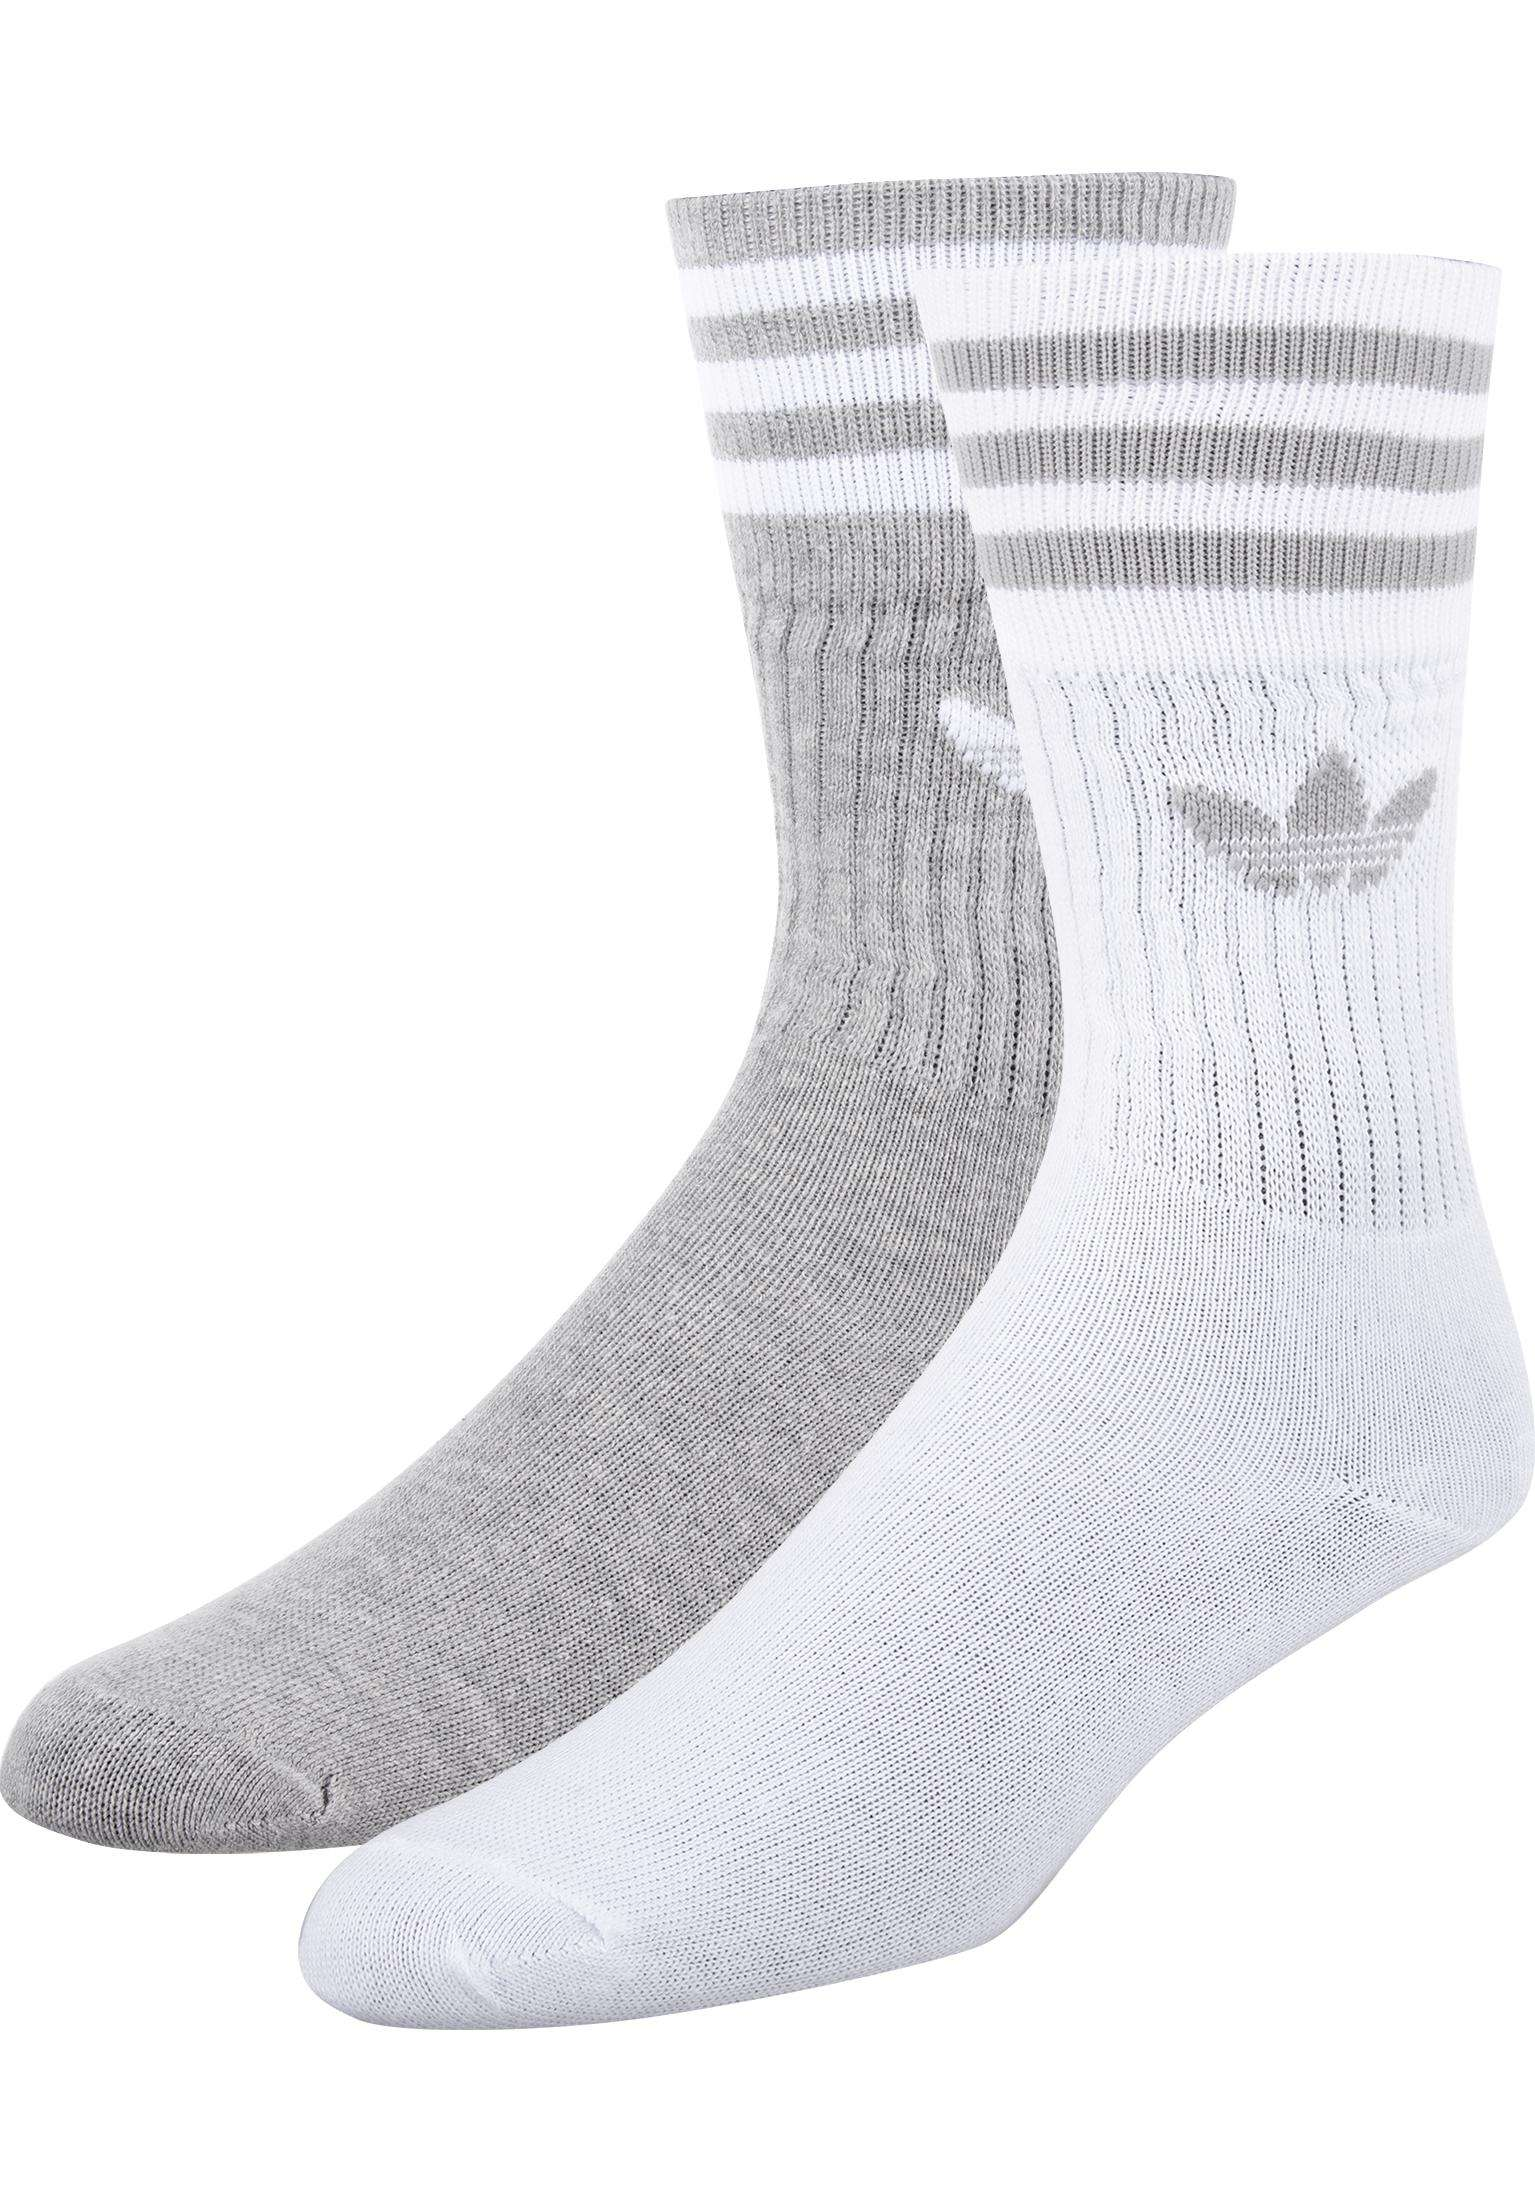 Solid Crew 2 Pack adidas Socks in heather for Women  5d83cd9b9